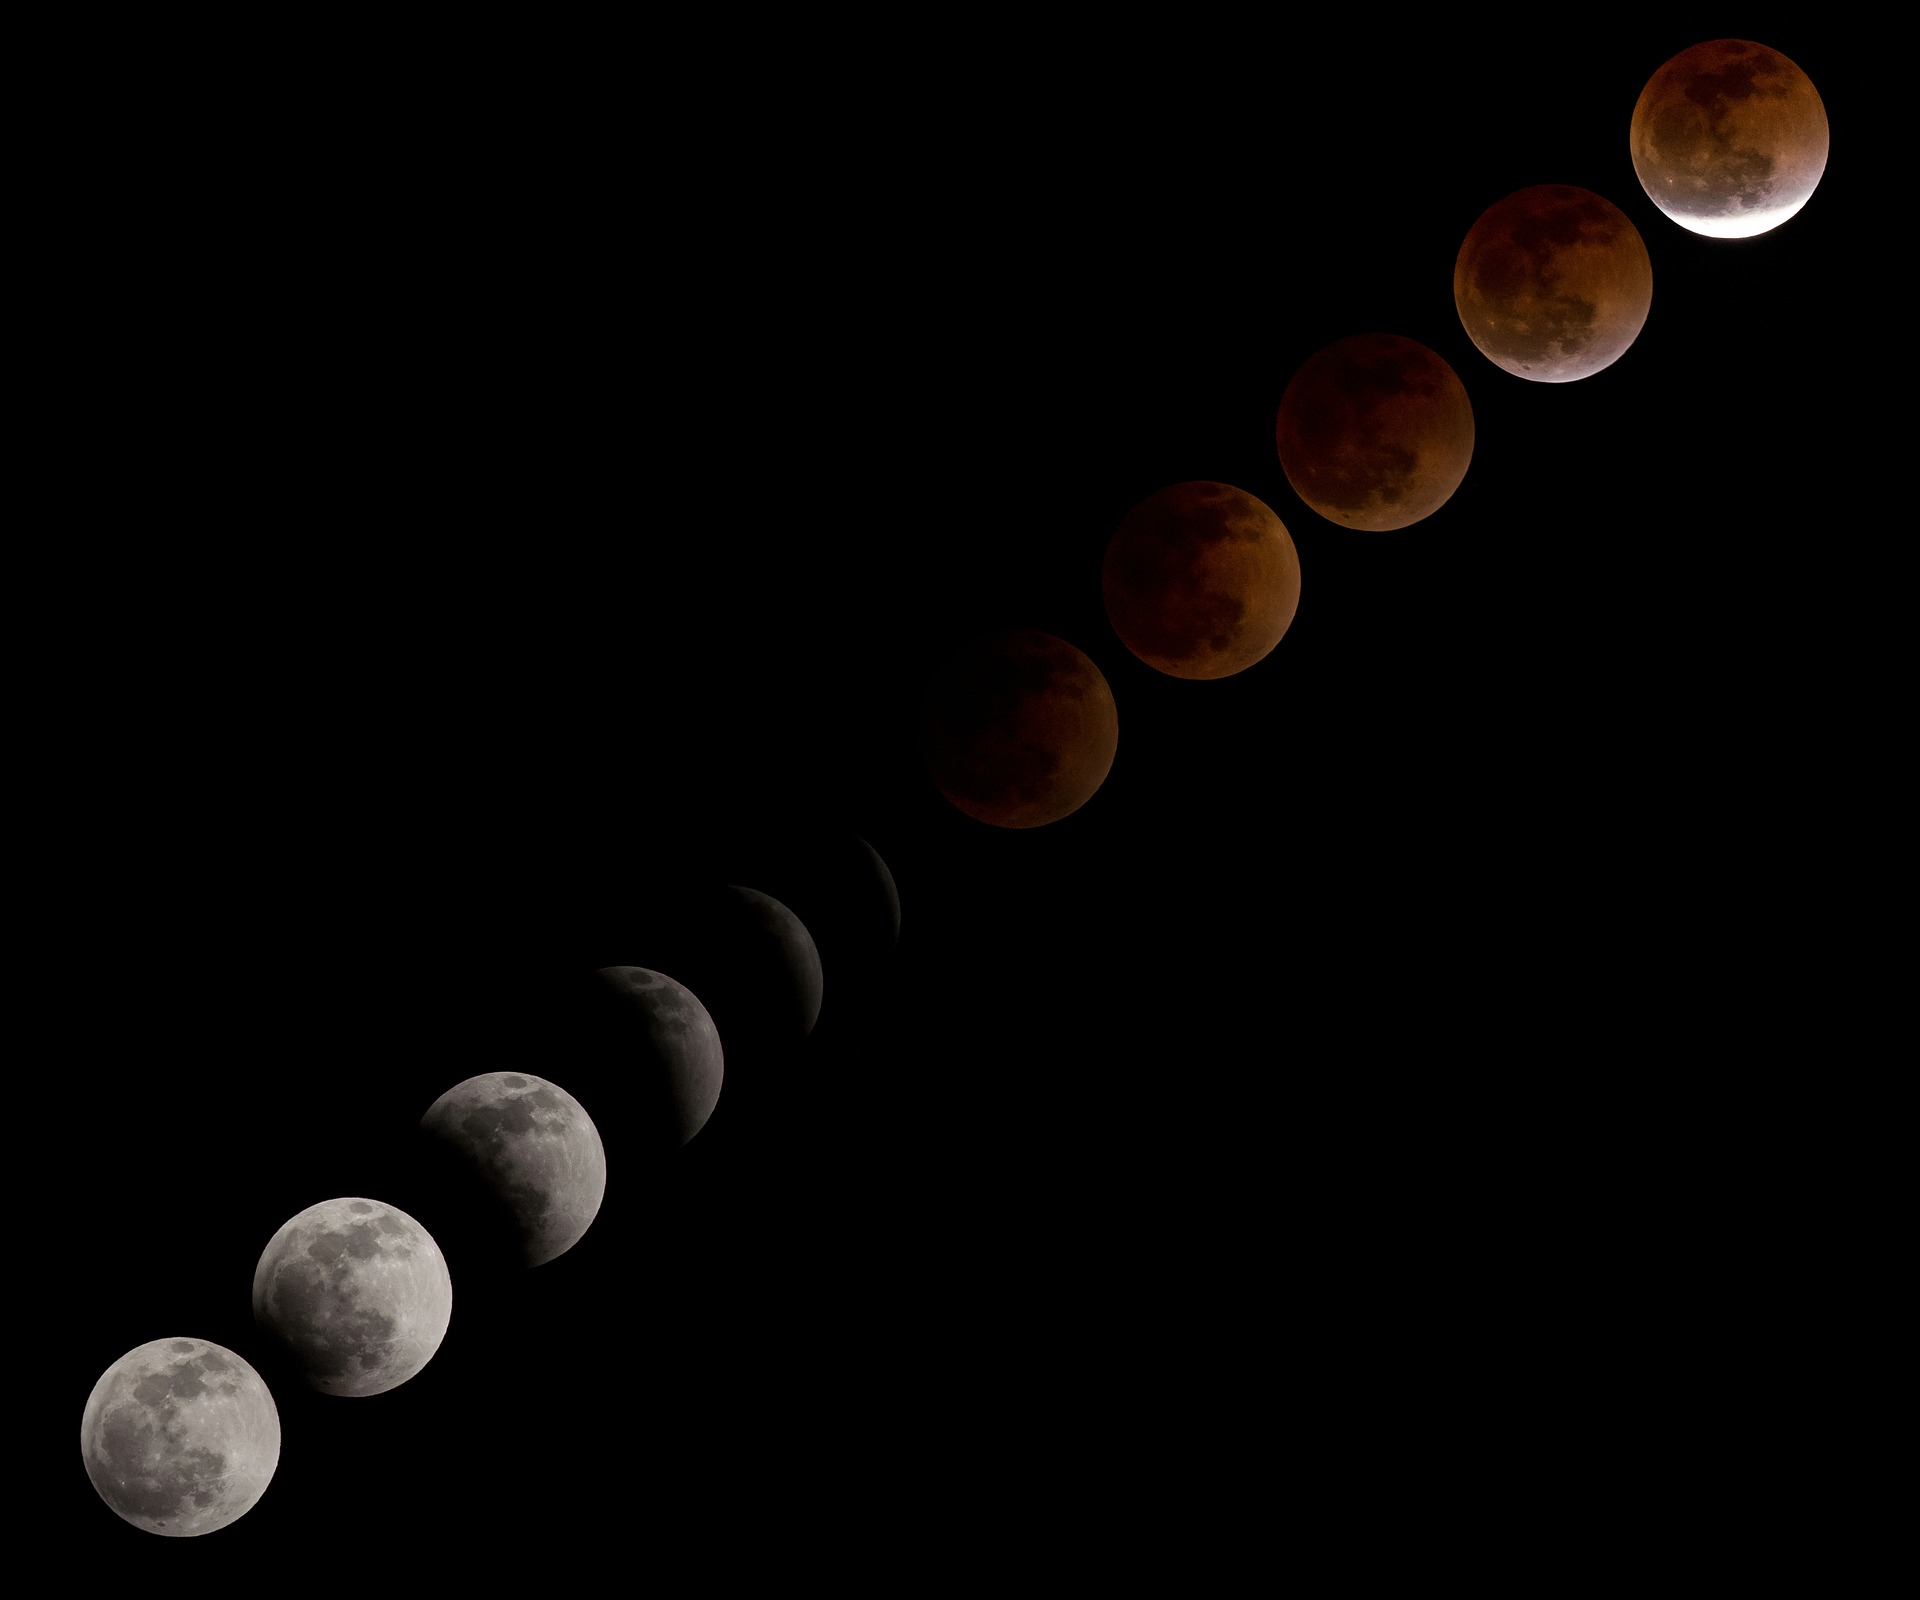 blood-moon-596784_1920.jpg